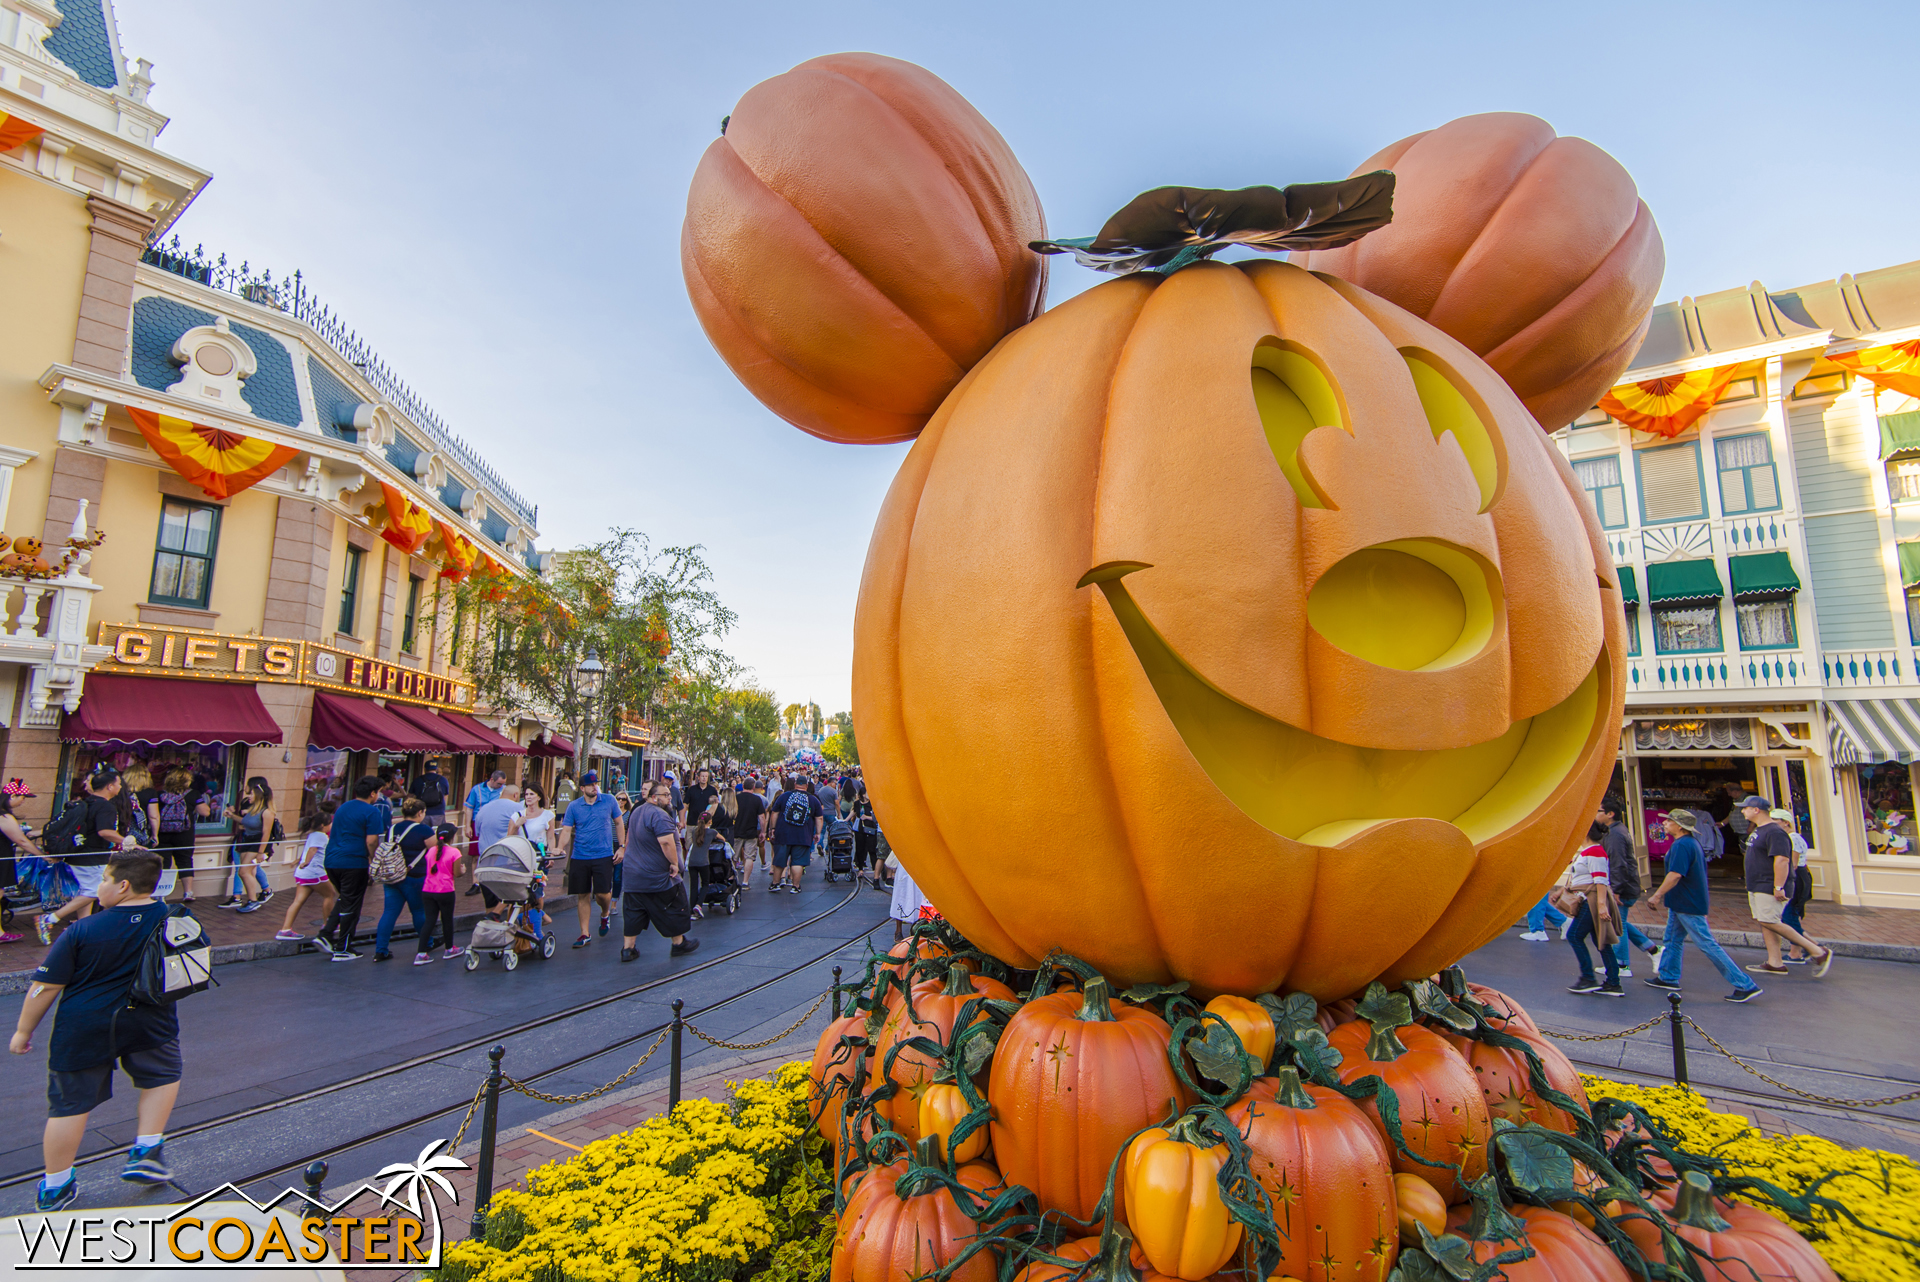 The giant Mickey pumpkin is once again at the head of Town Square.